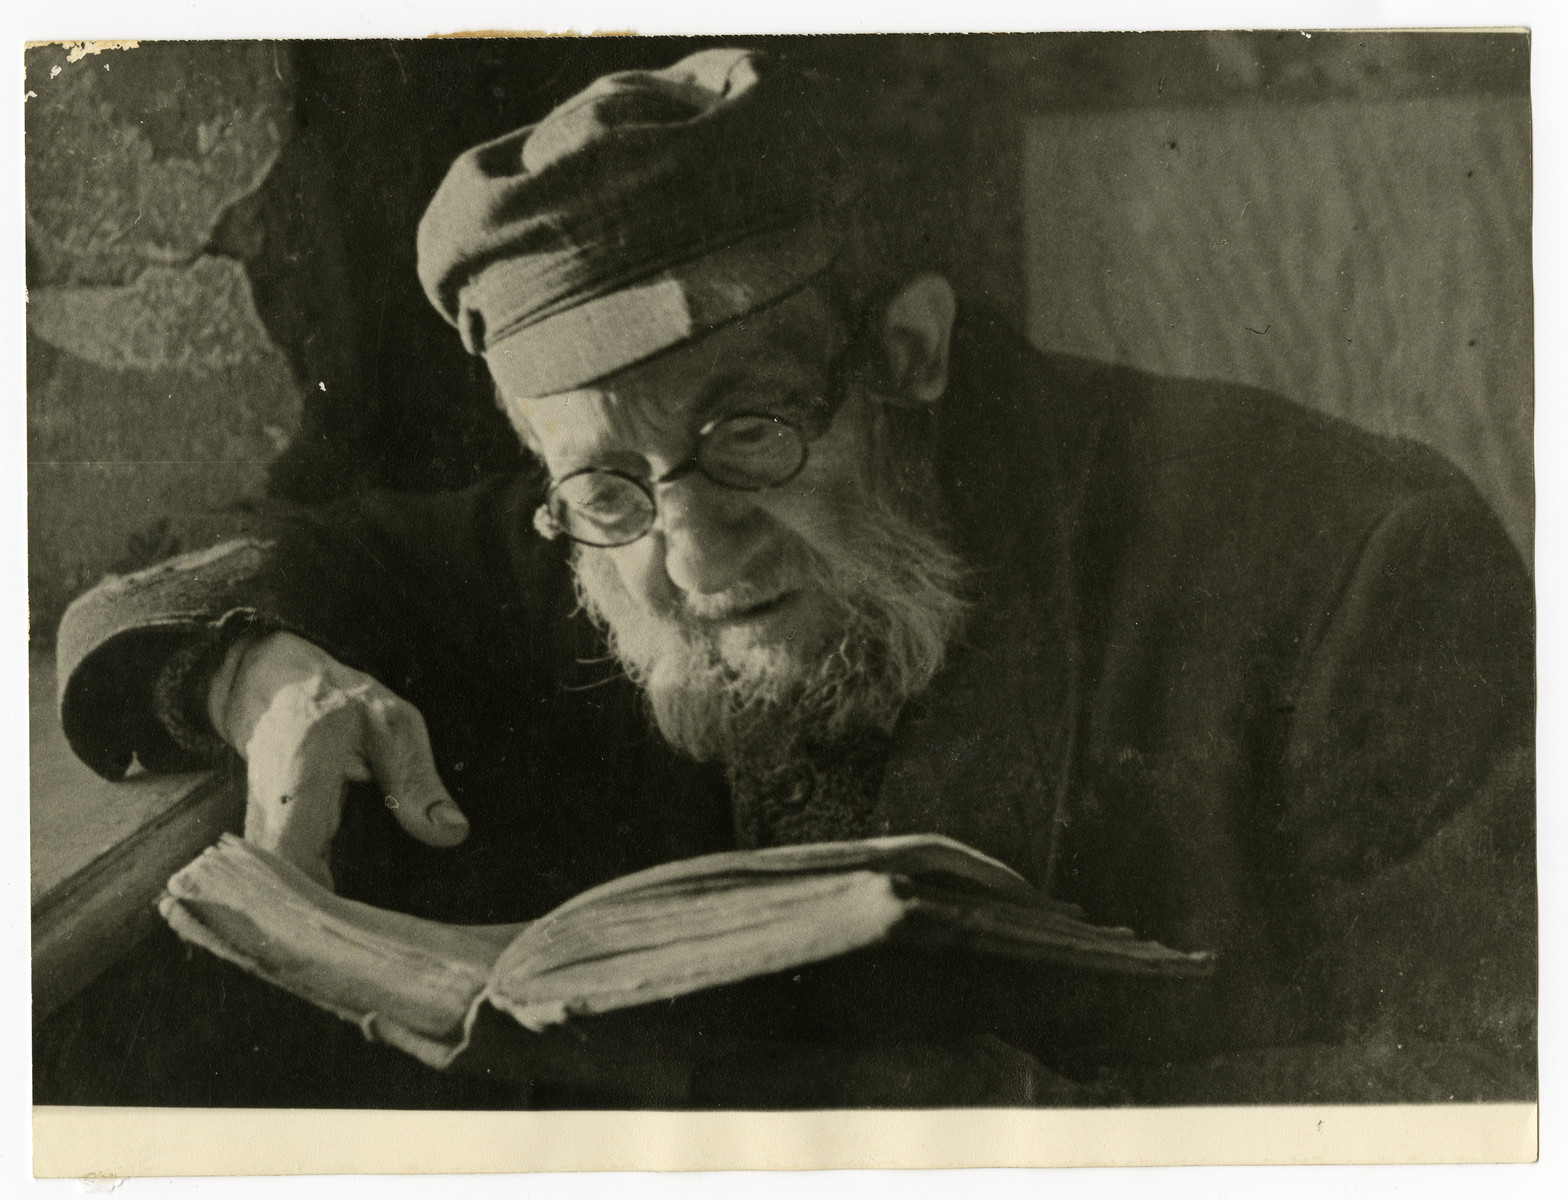 Shmuel Dawid Grosman reads a book [probably in the Lodz ghetto].